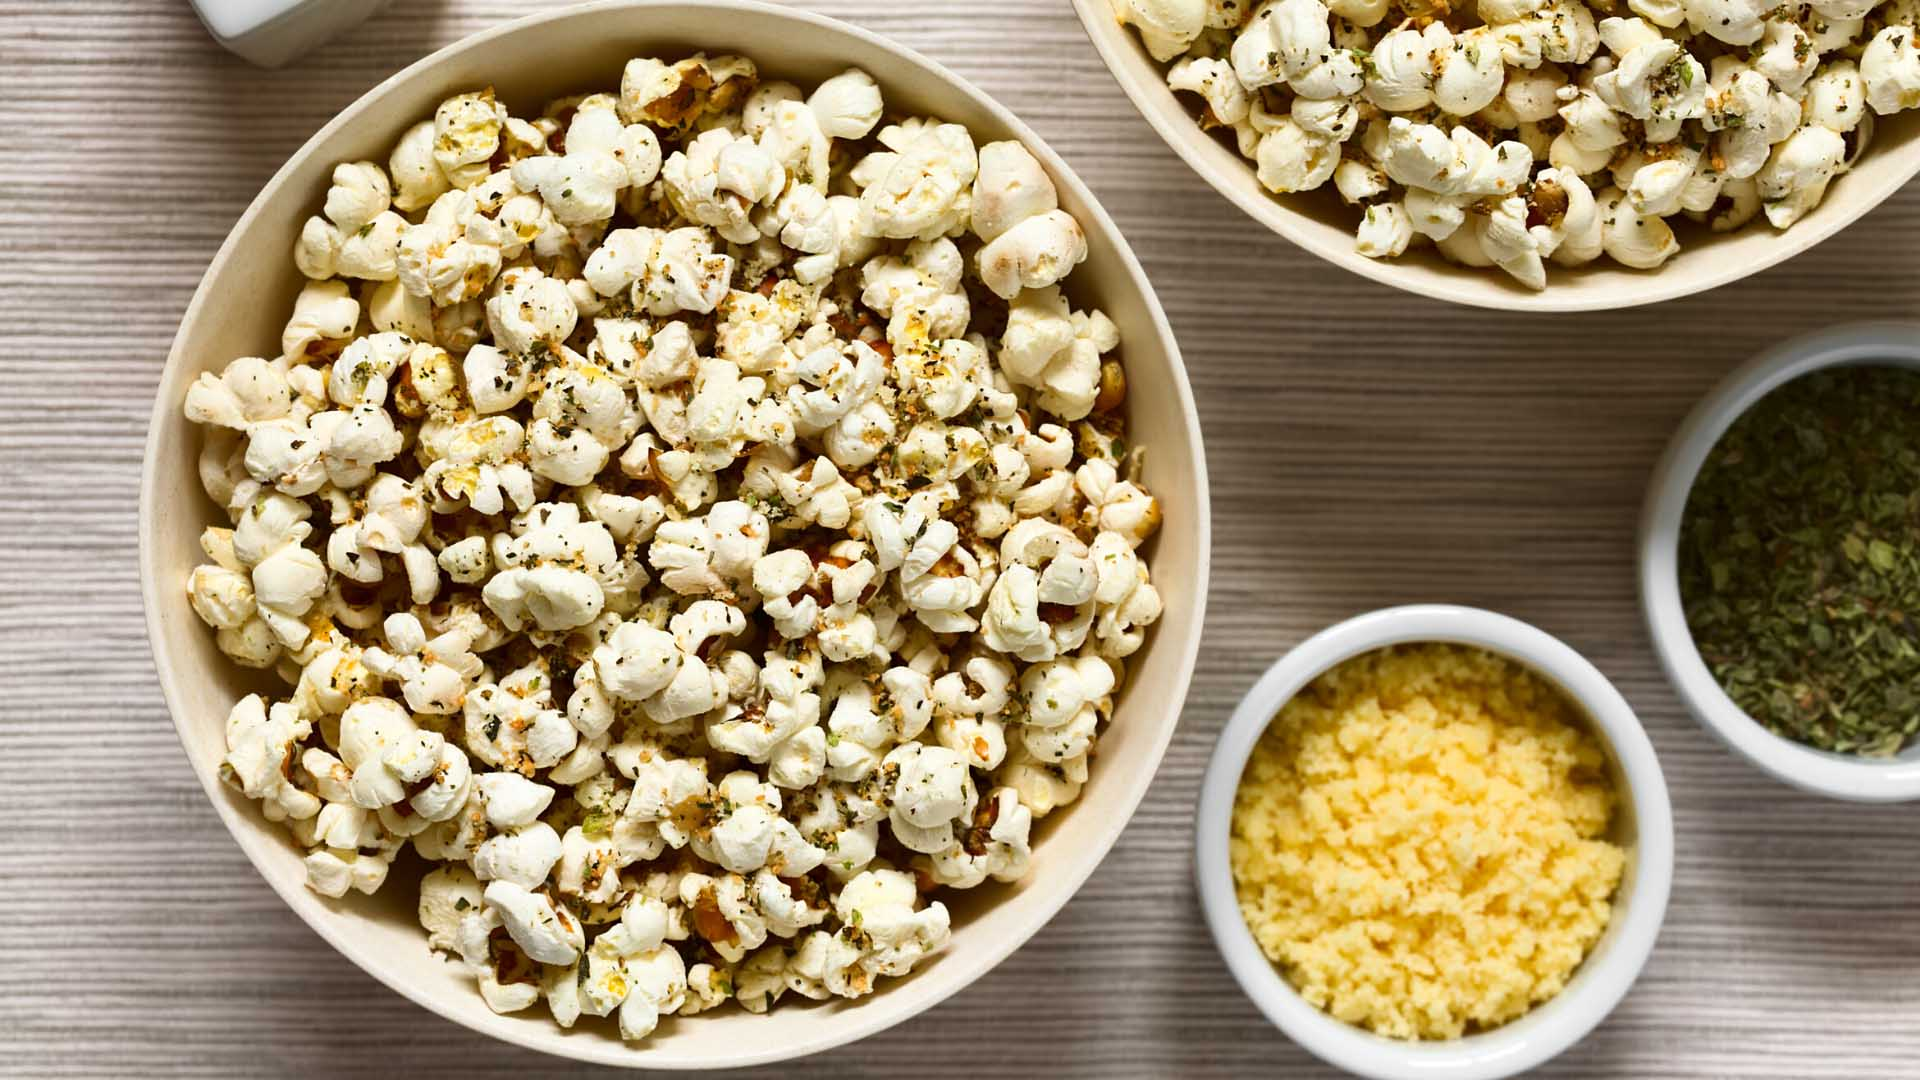 Image of Popcorn with Herbs and Asiago Cheese